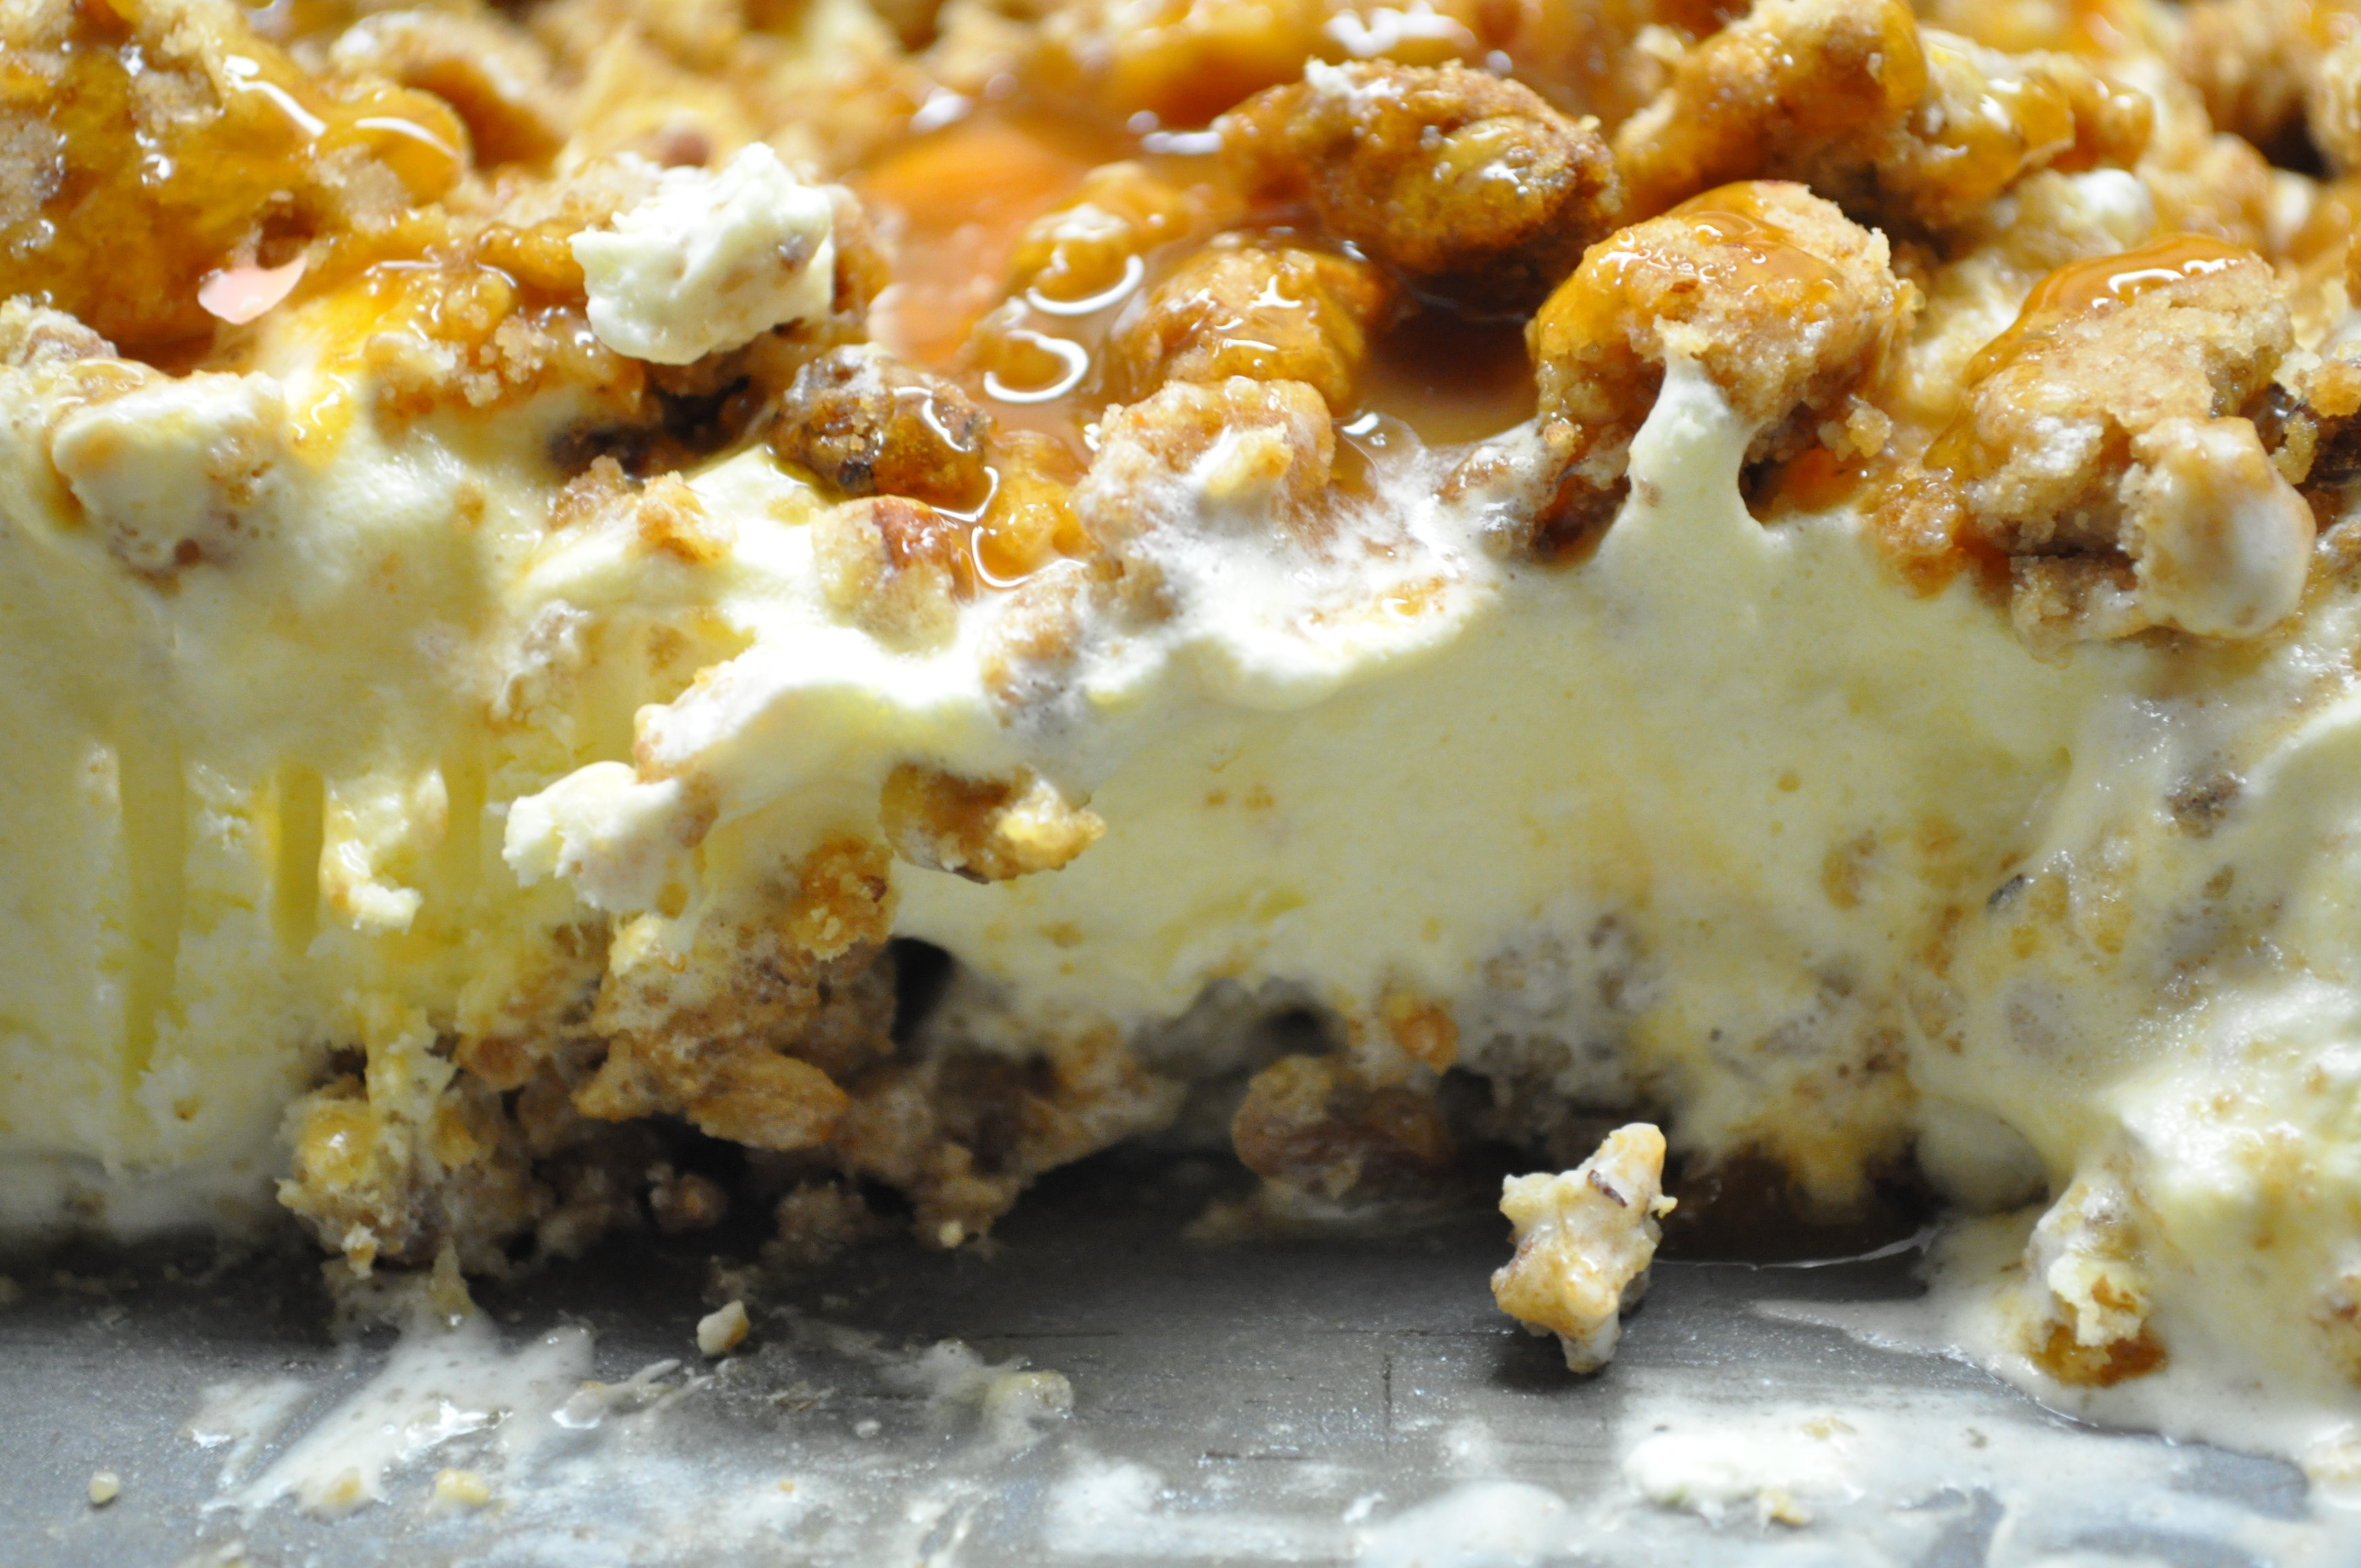 Best Desserts Recipes  The Best Dessert Ever in the History of the World